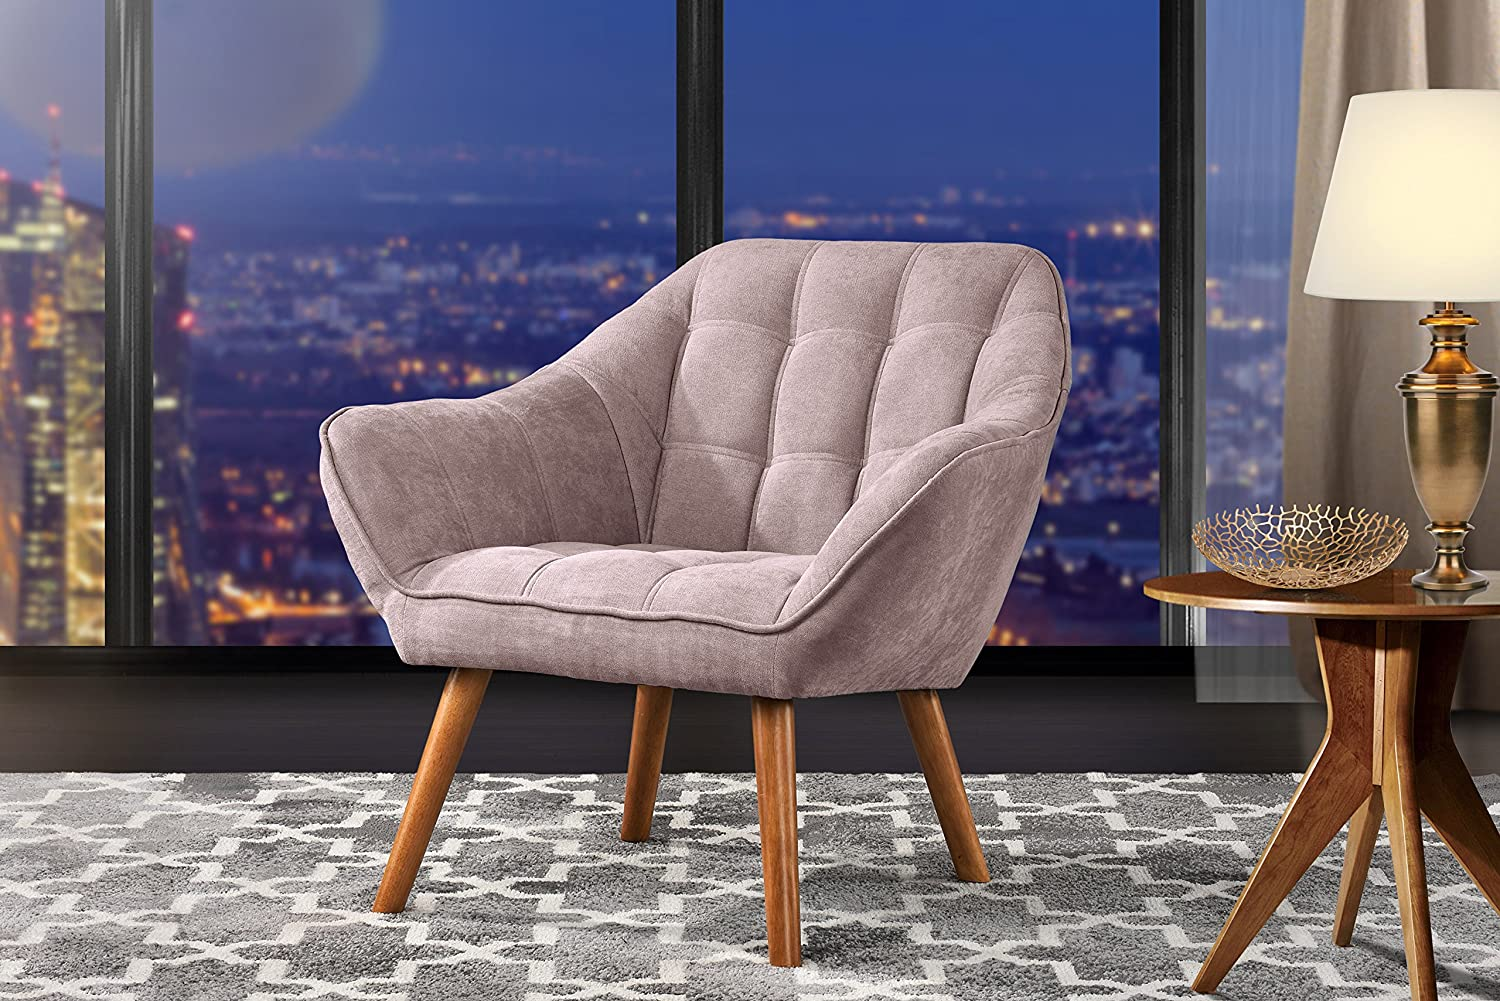 Amazon.com: Accent Chair for Living Room, Linen Arm Chair with ...